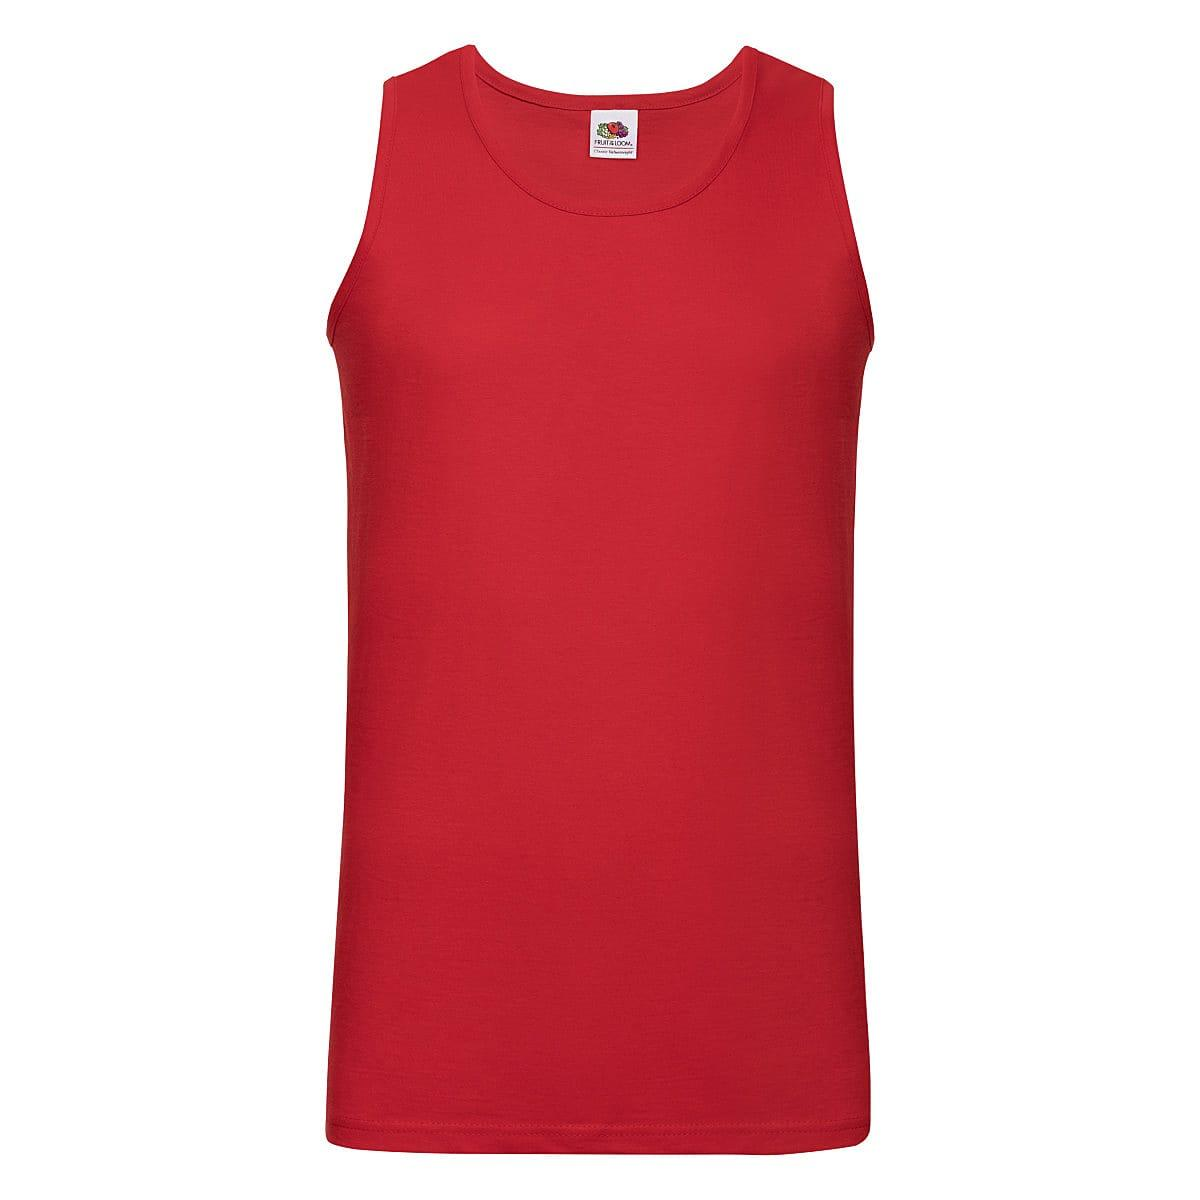 Fruit Of The Loom Athletic Vest in Red (Product Code: 61098)